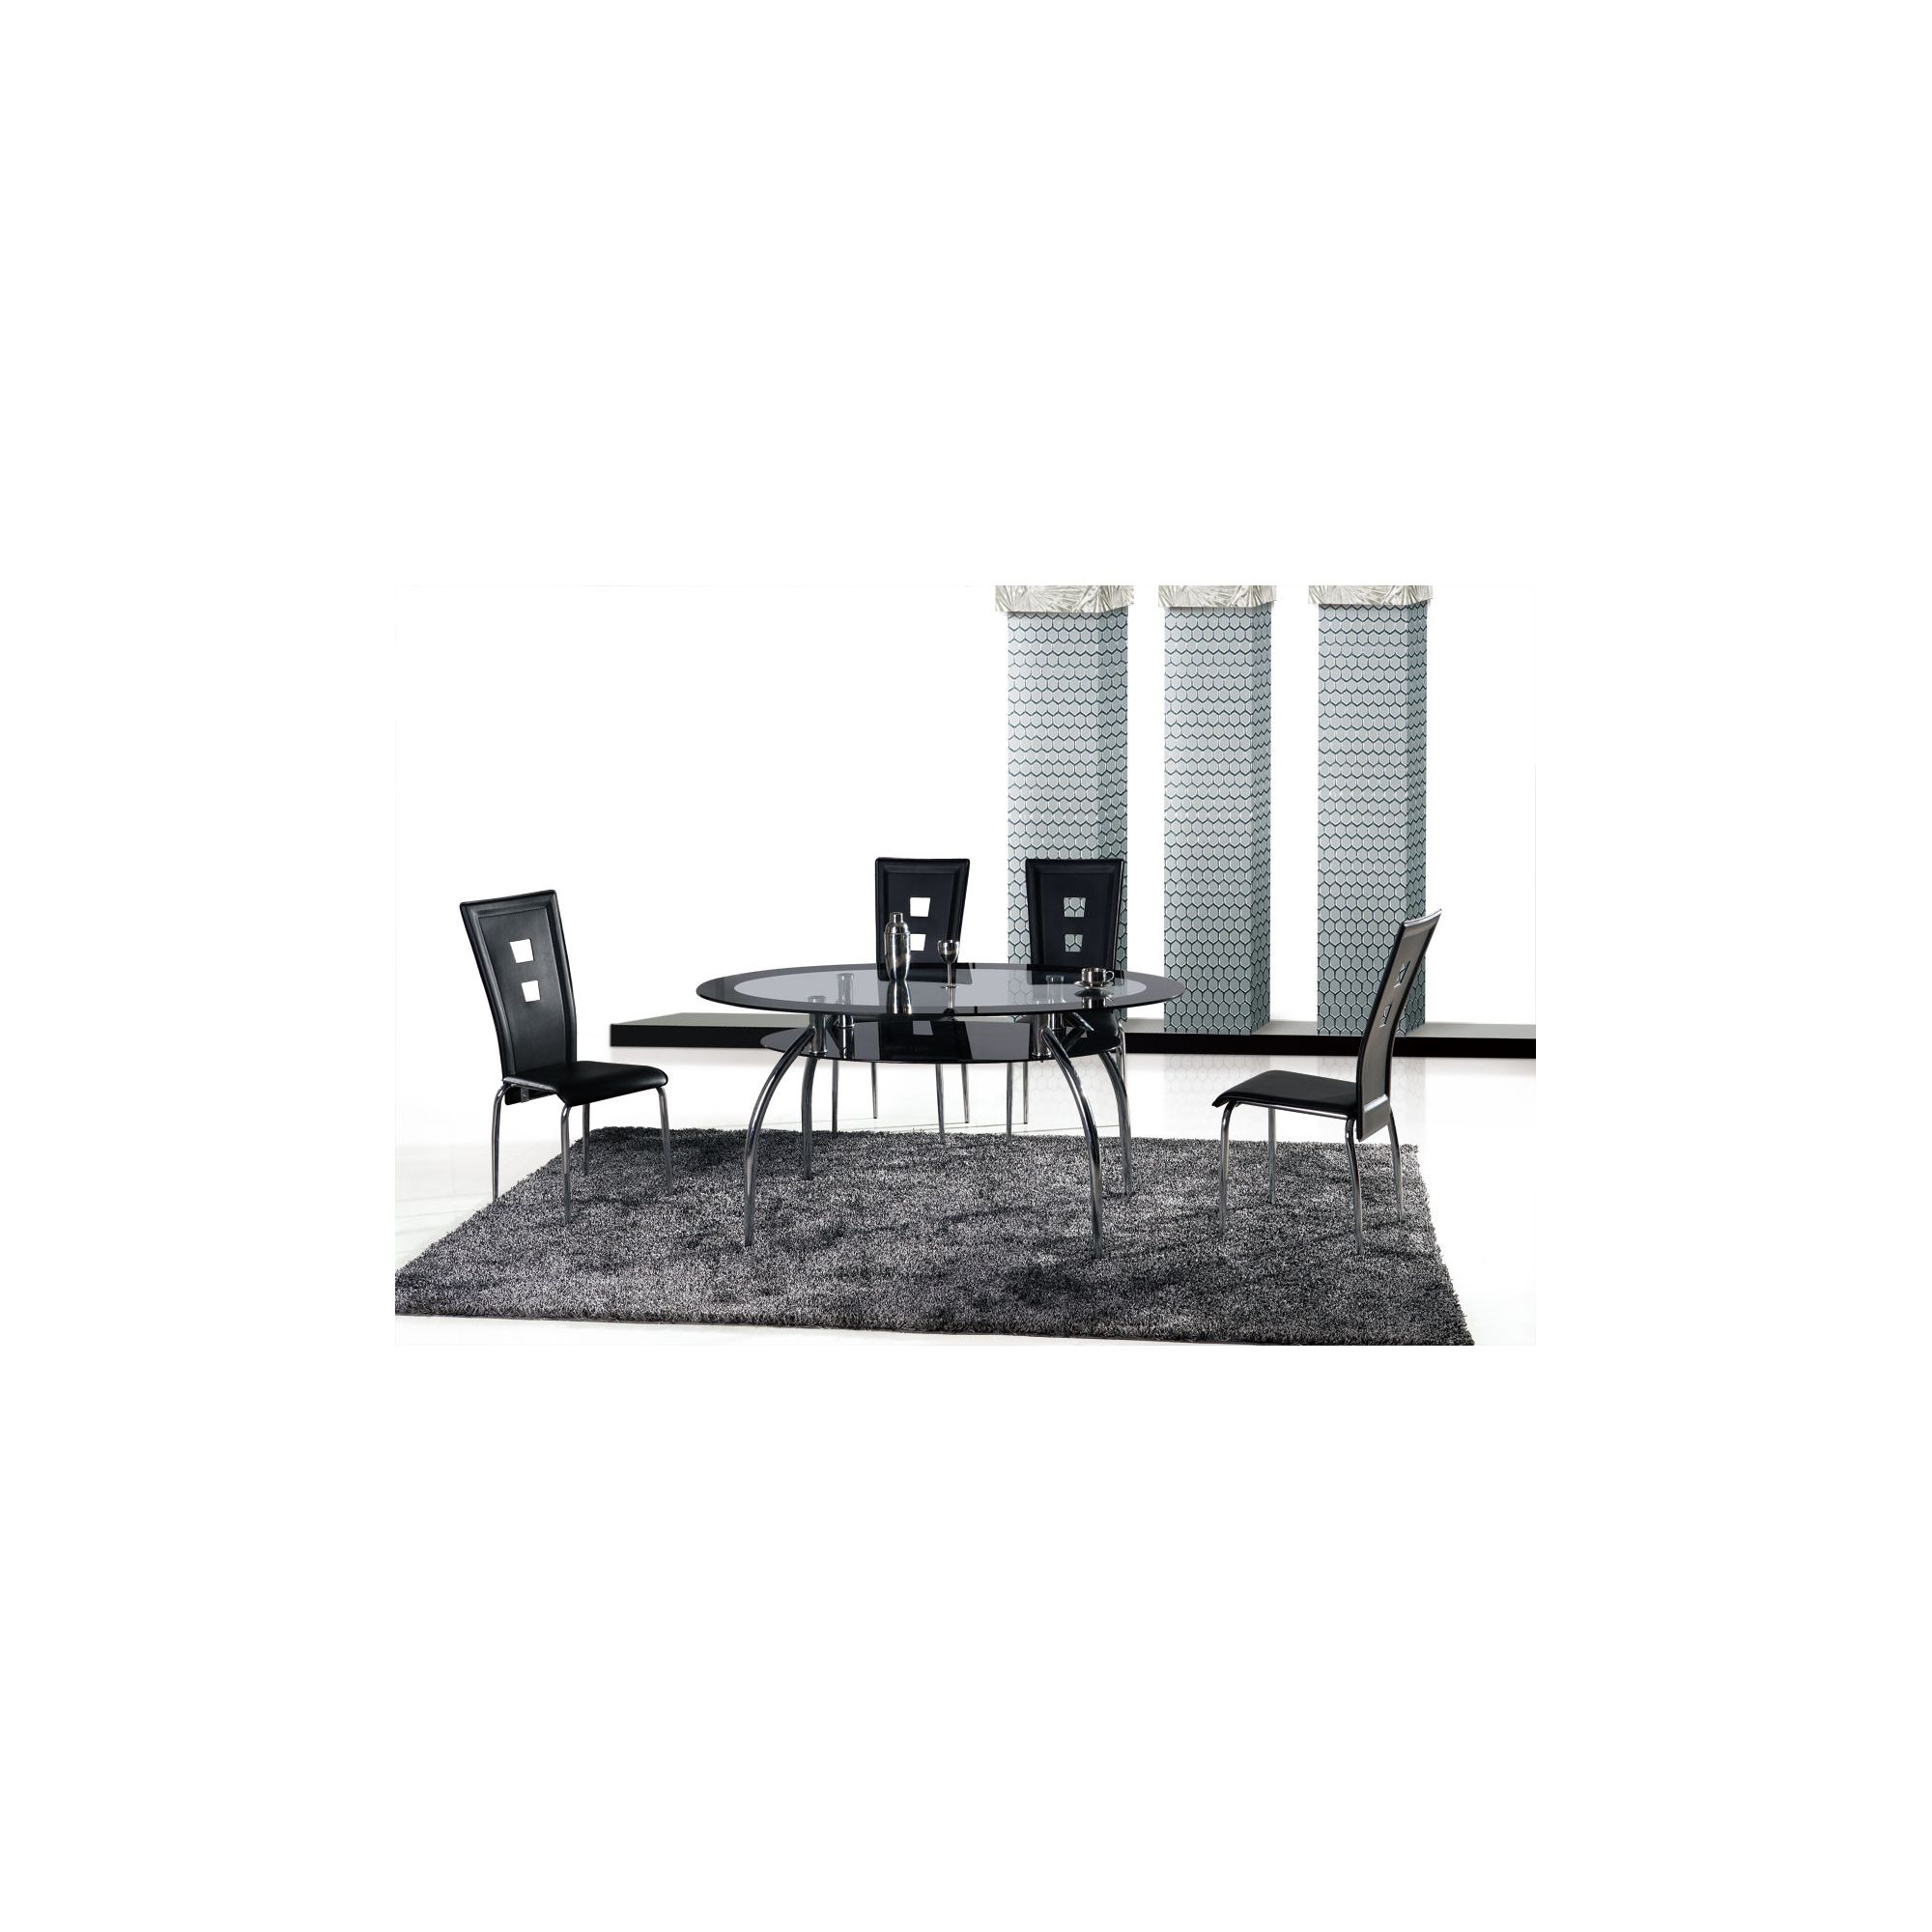 Ideal Furniture Vegas Dining Table Set with Four Chairs - Brown at Tesco Direct